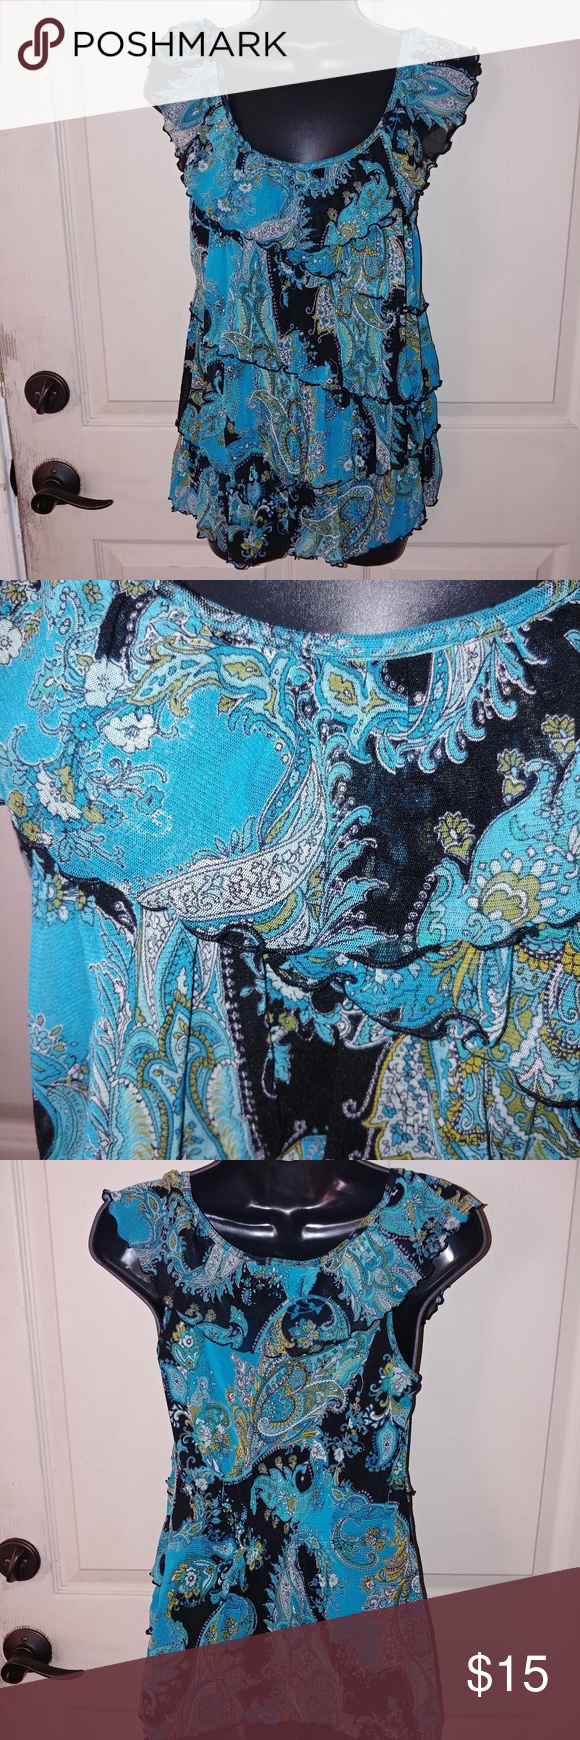 Beautiful tiered top Beautiful tied top Size medium Sinched in the back for a great fitting top Apt. 9 brand Excellent condition ****************** 1-08022018 Apt. 9 Tops Blouses